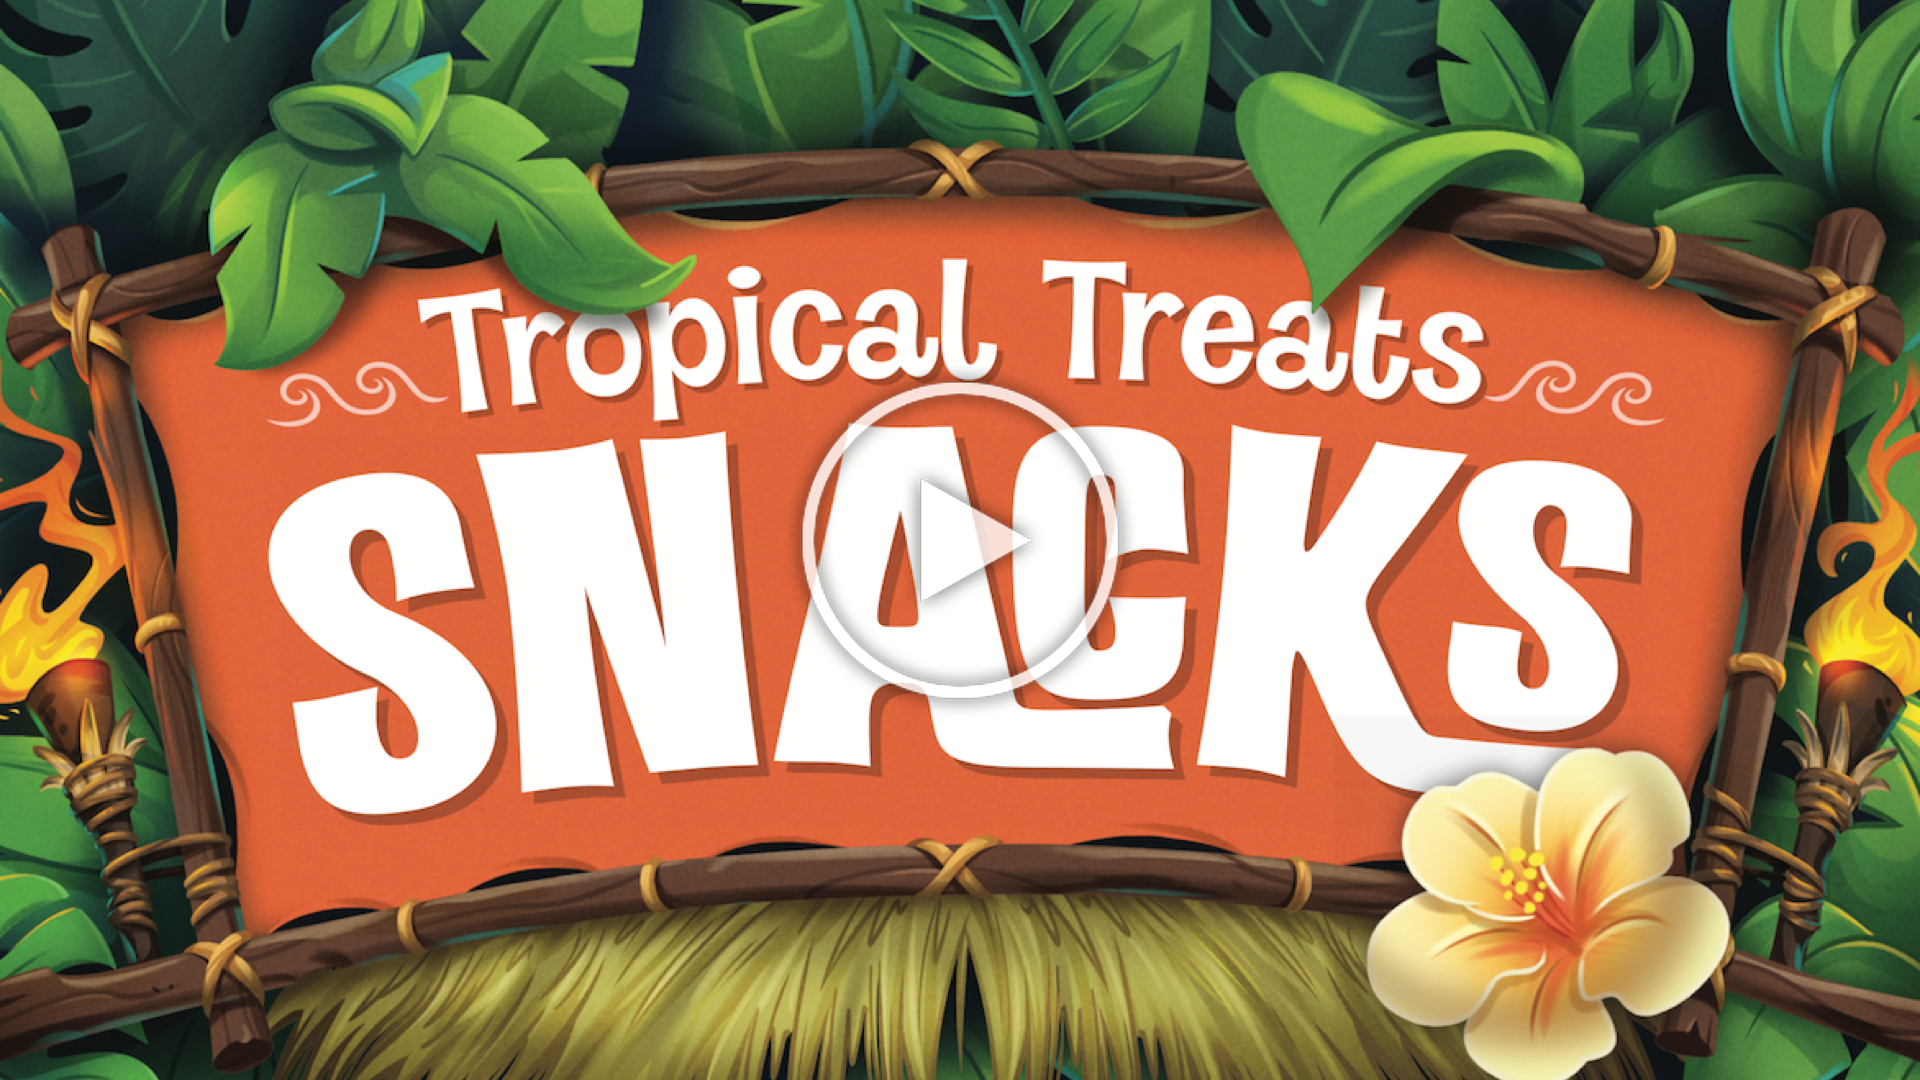 Tropical Treats play viceo